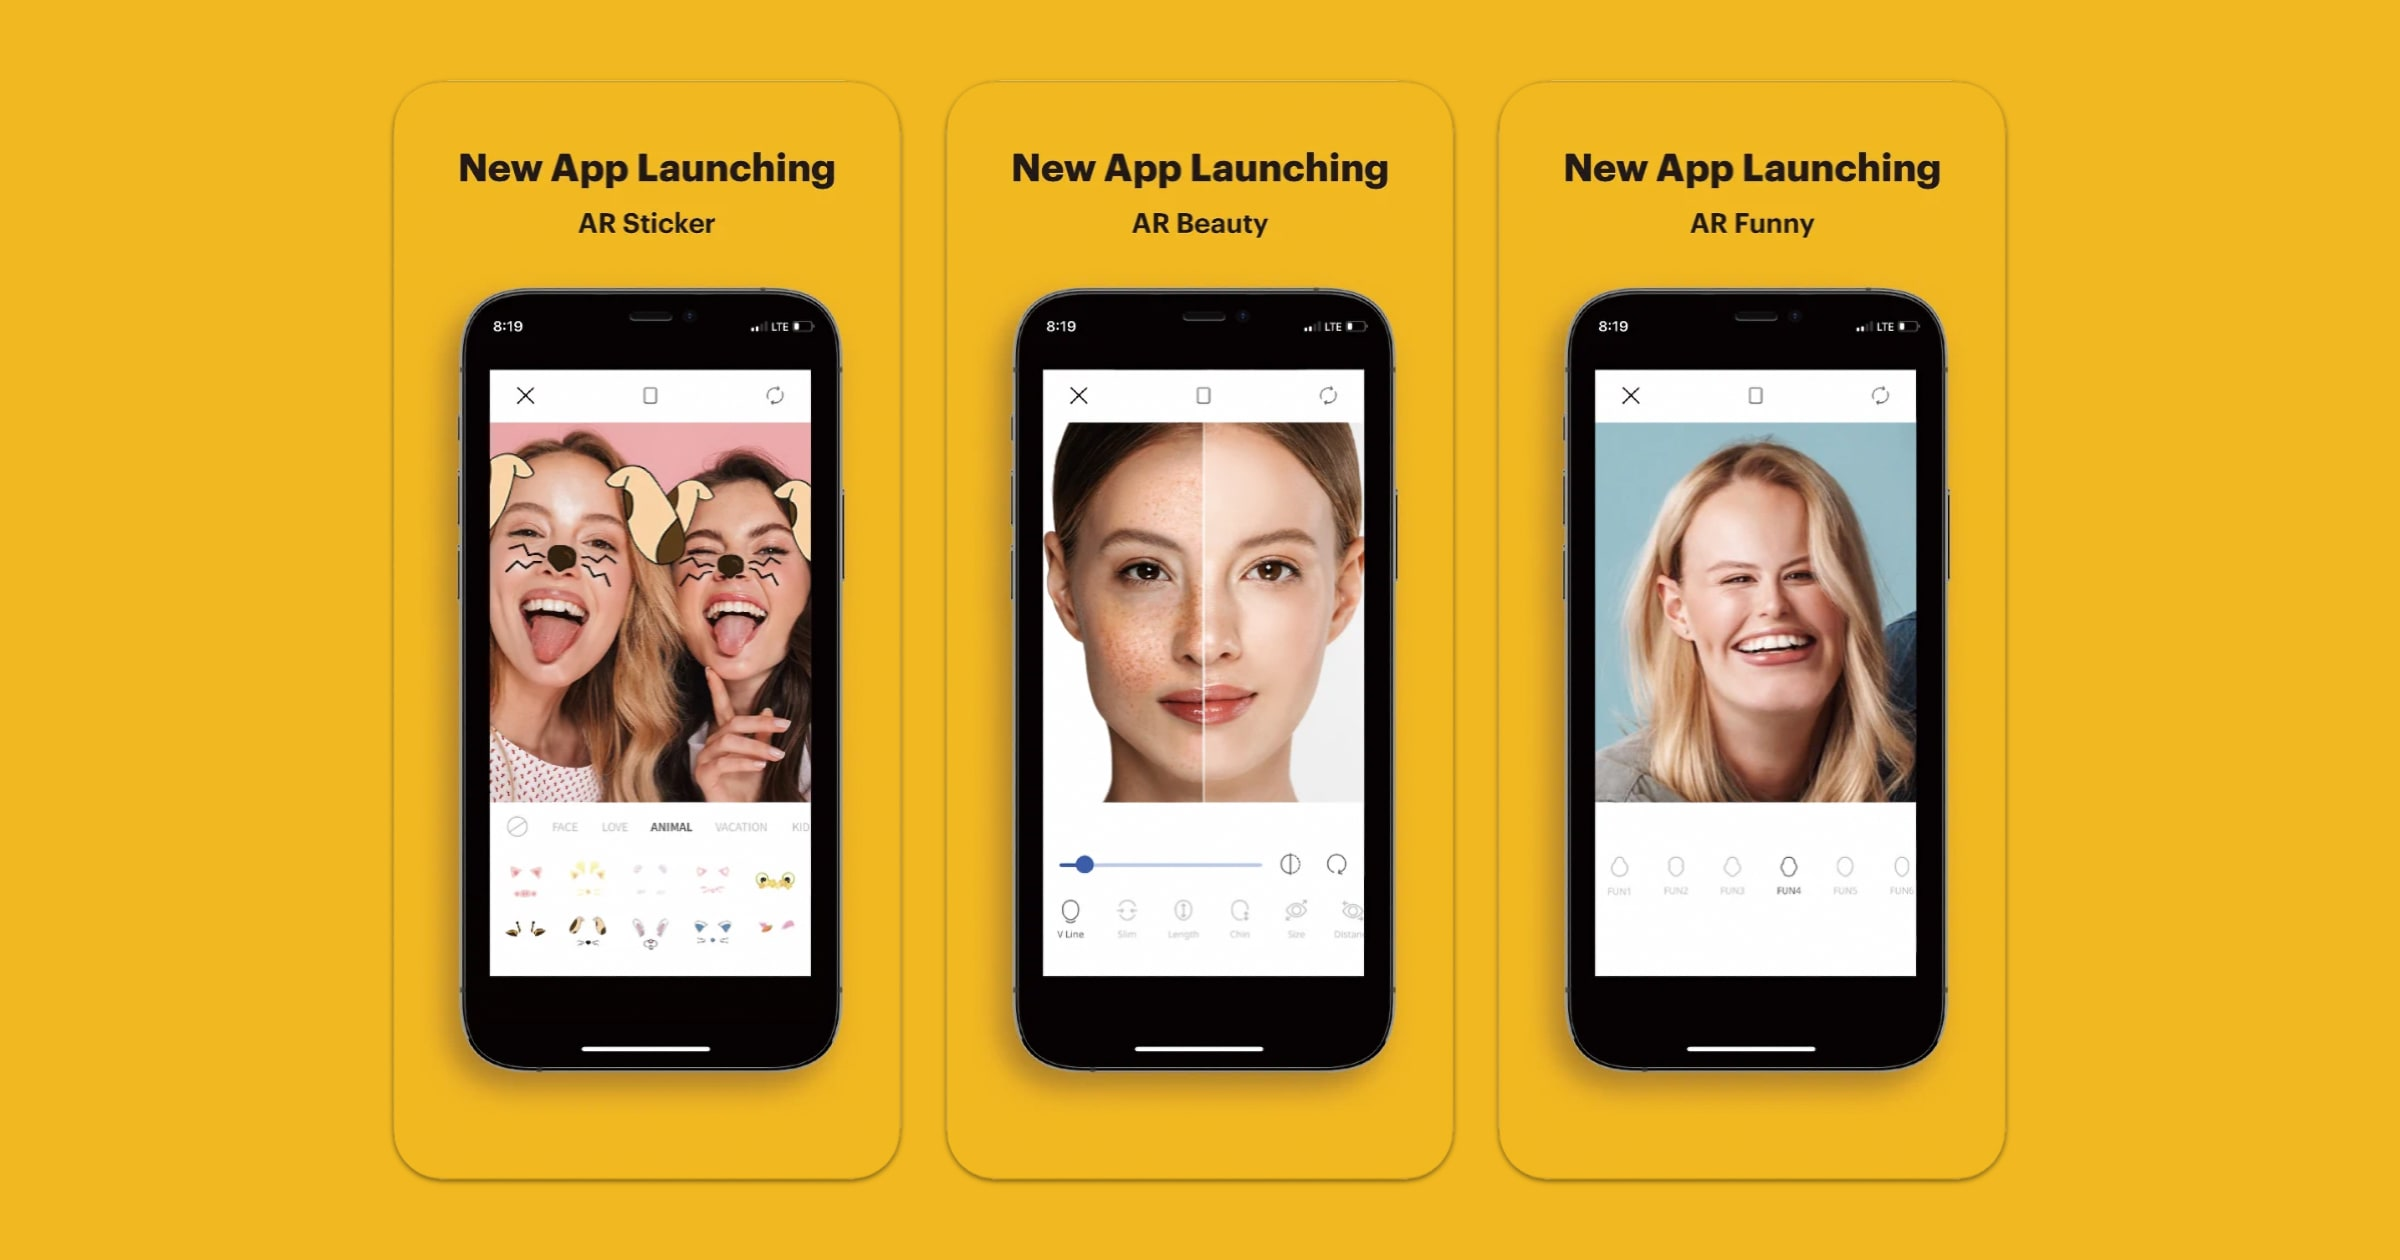 Kodak Photo Printer App Updates With AR, Beauty Functions, Templates, and More